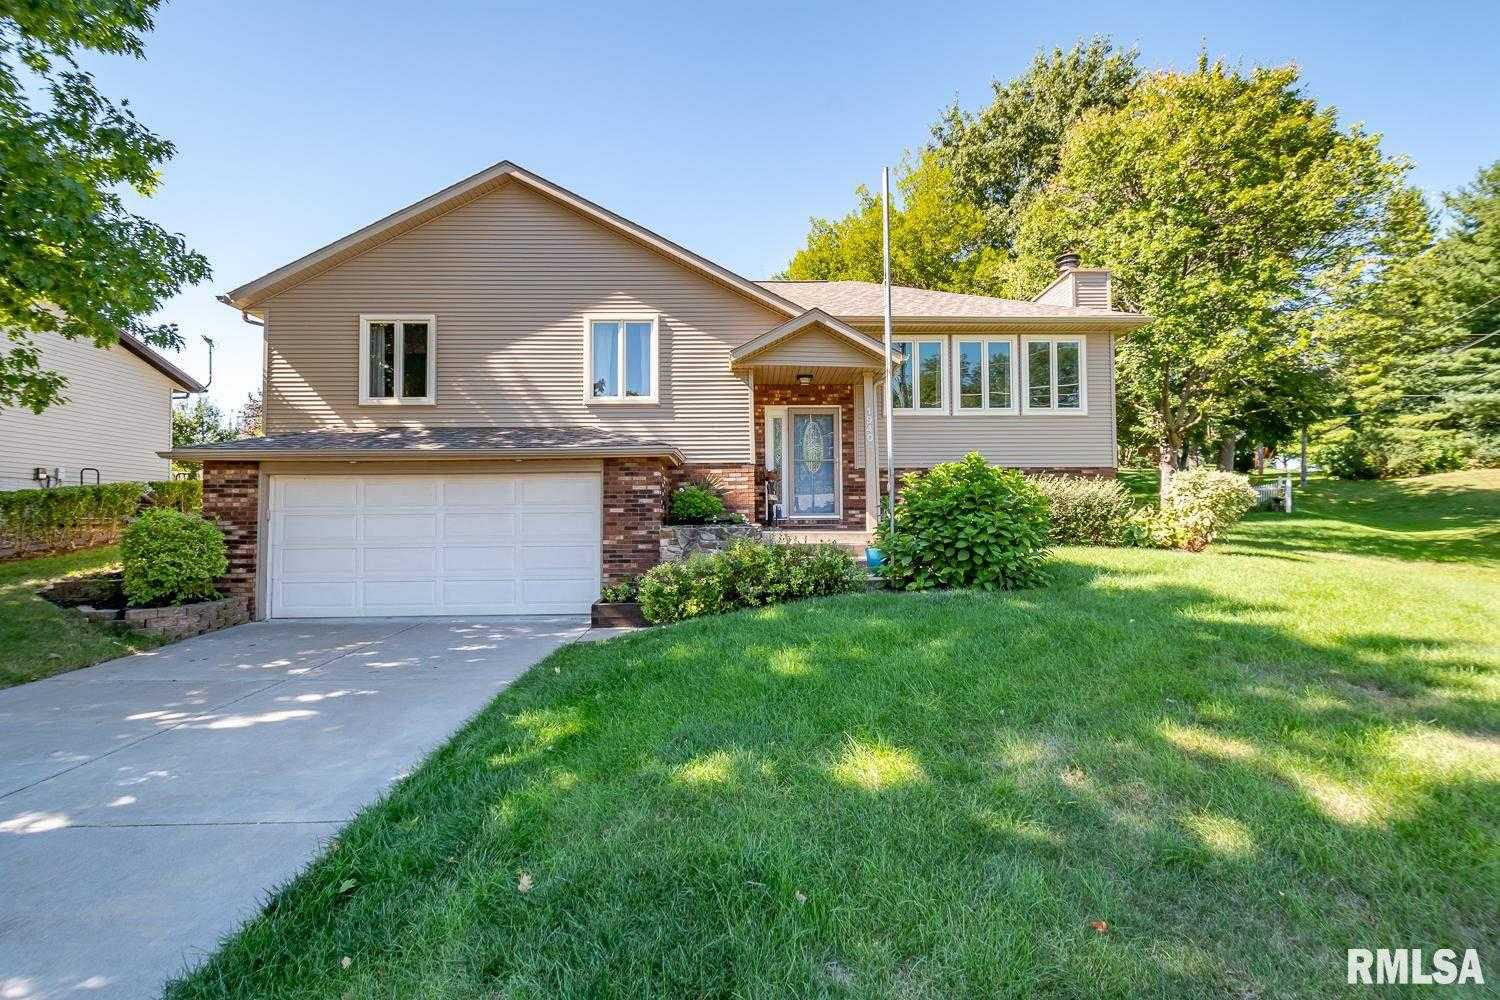 $320,000 - 4Br/3Ba -  for Sale in Halcyon Hills, Bettendorf